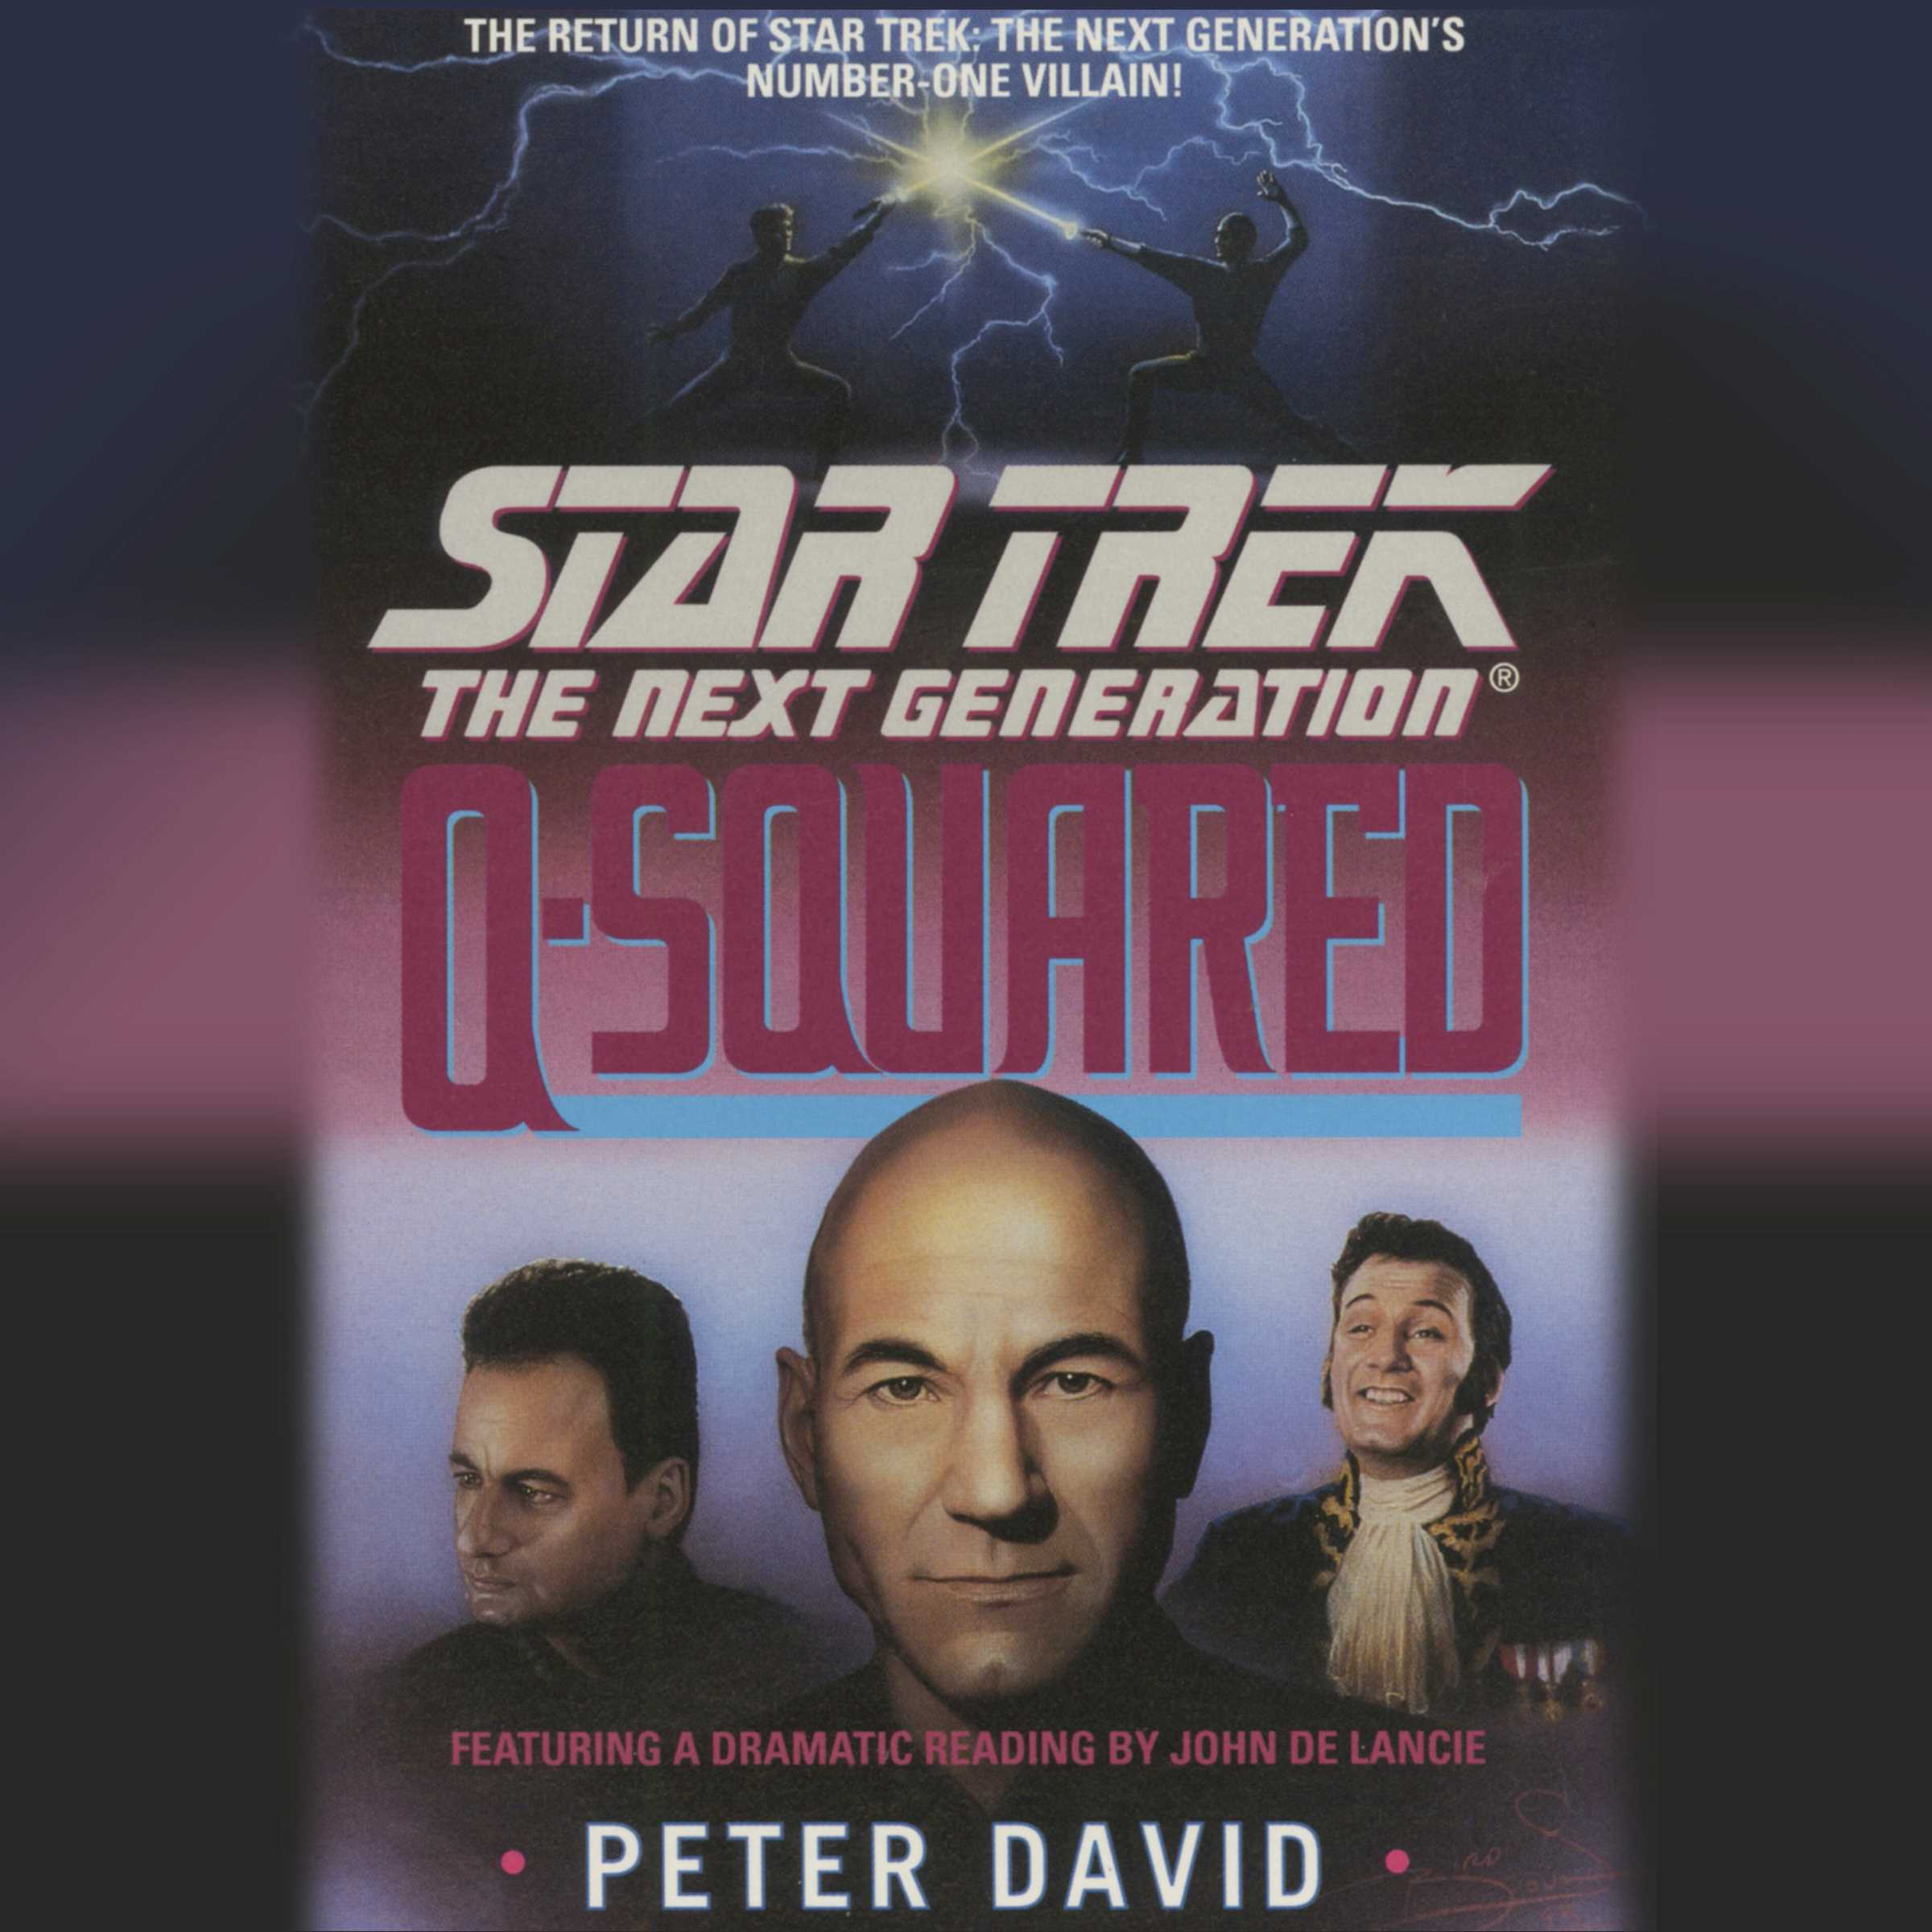 Star-trek-next-generation-q-squared-9780743546324_hr